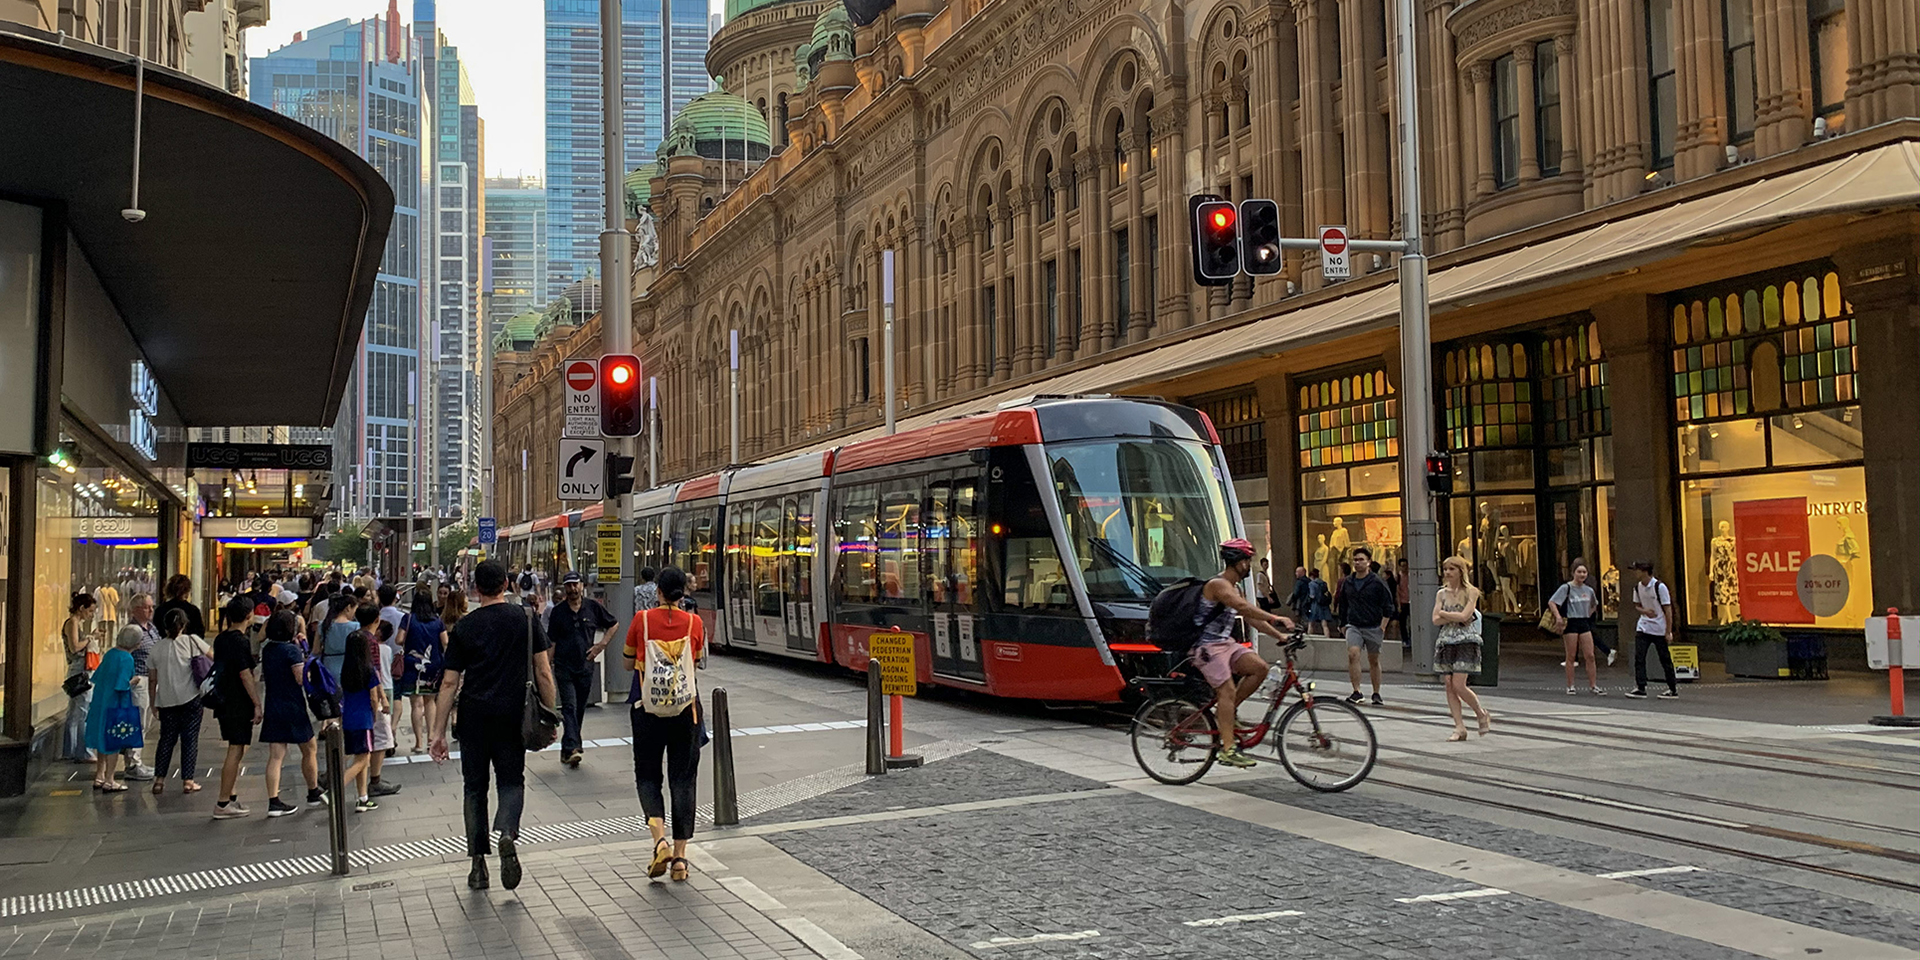 Tramways create attractive cities